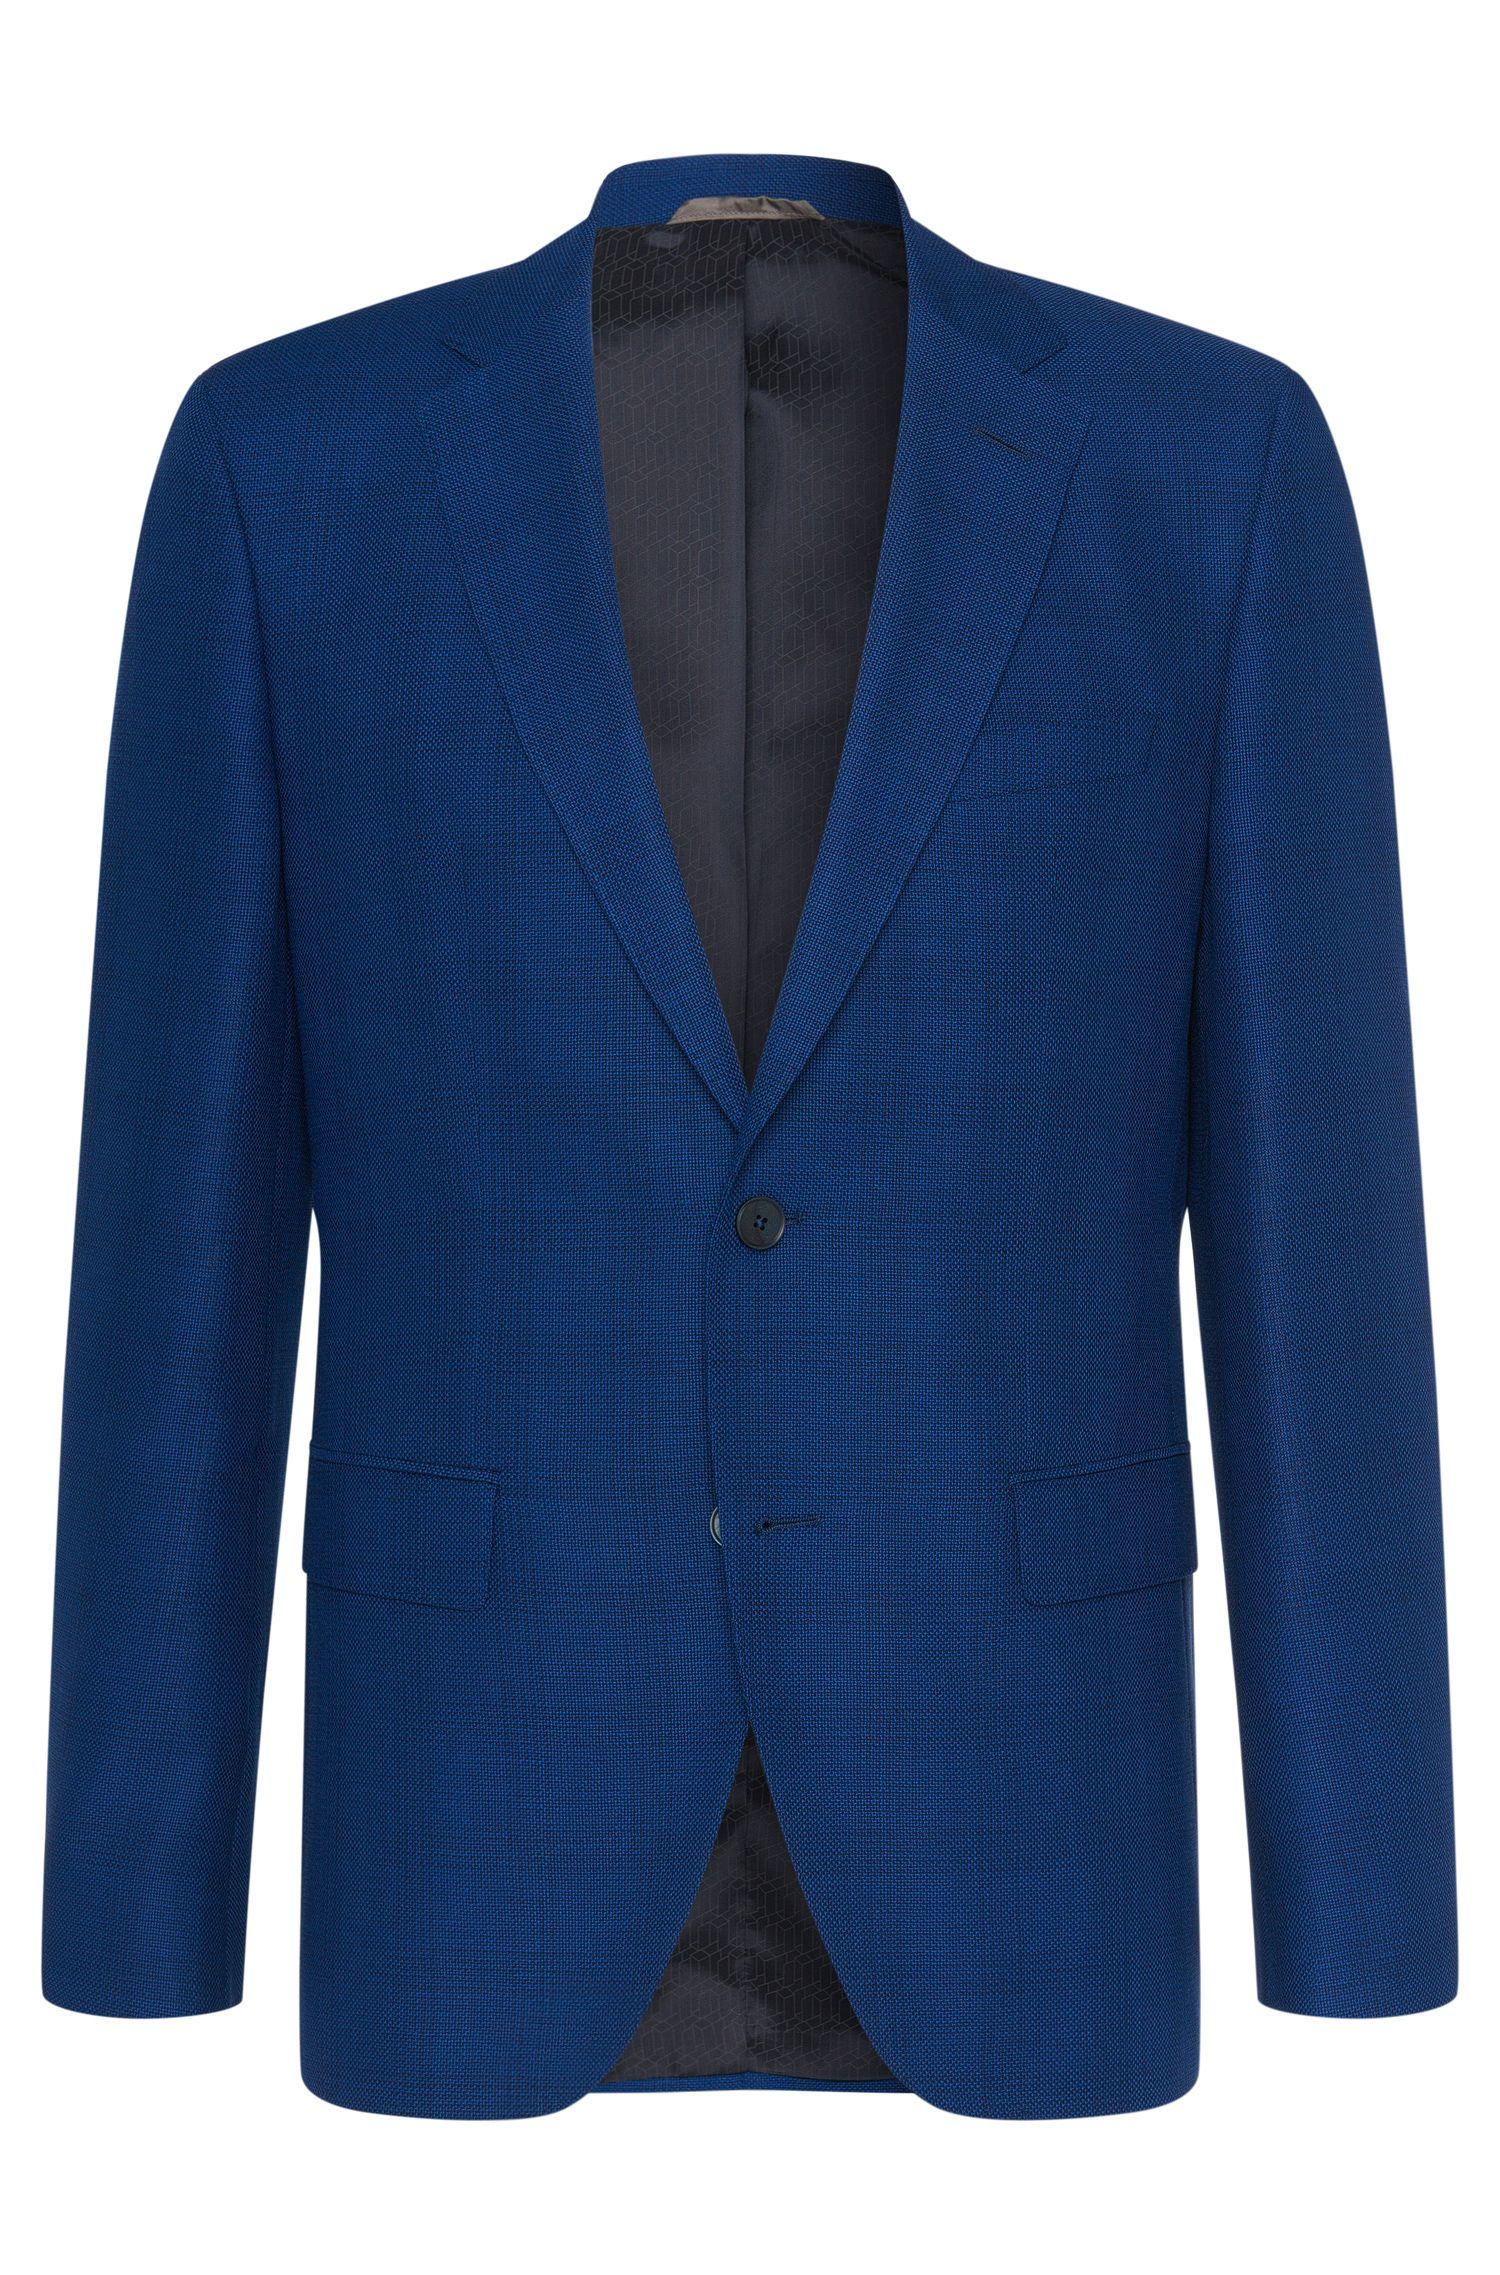 'Jewels' | Regular Fit, Super 100 Virgin Wool Sport Coat